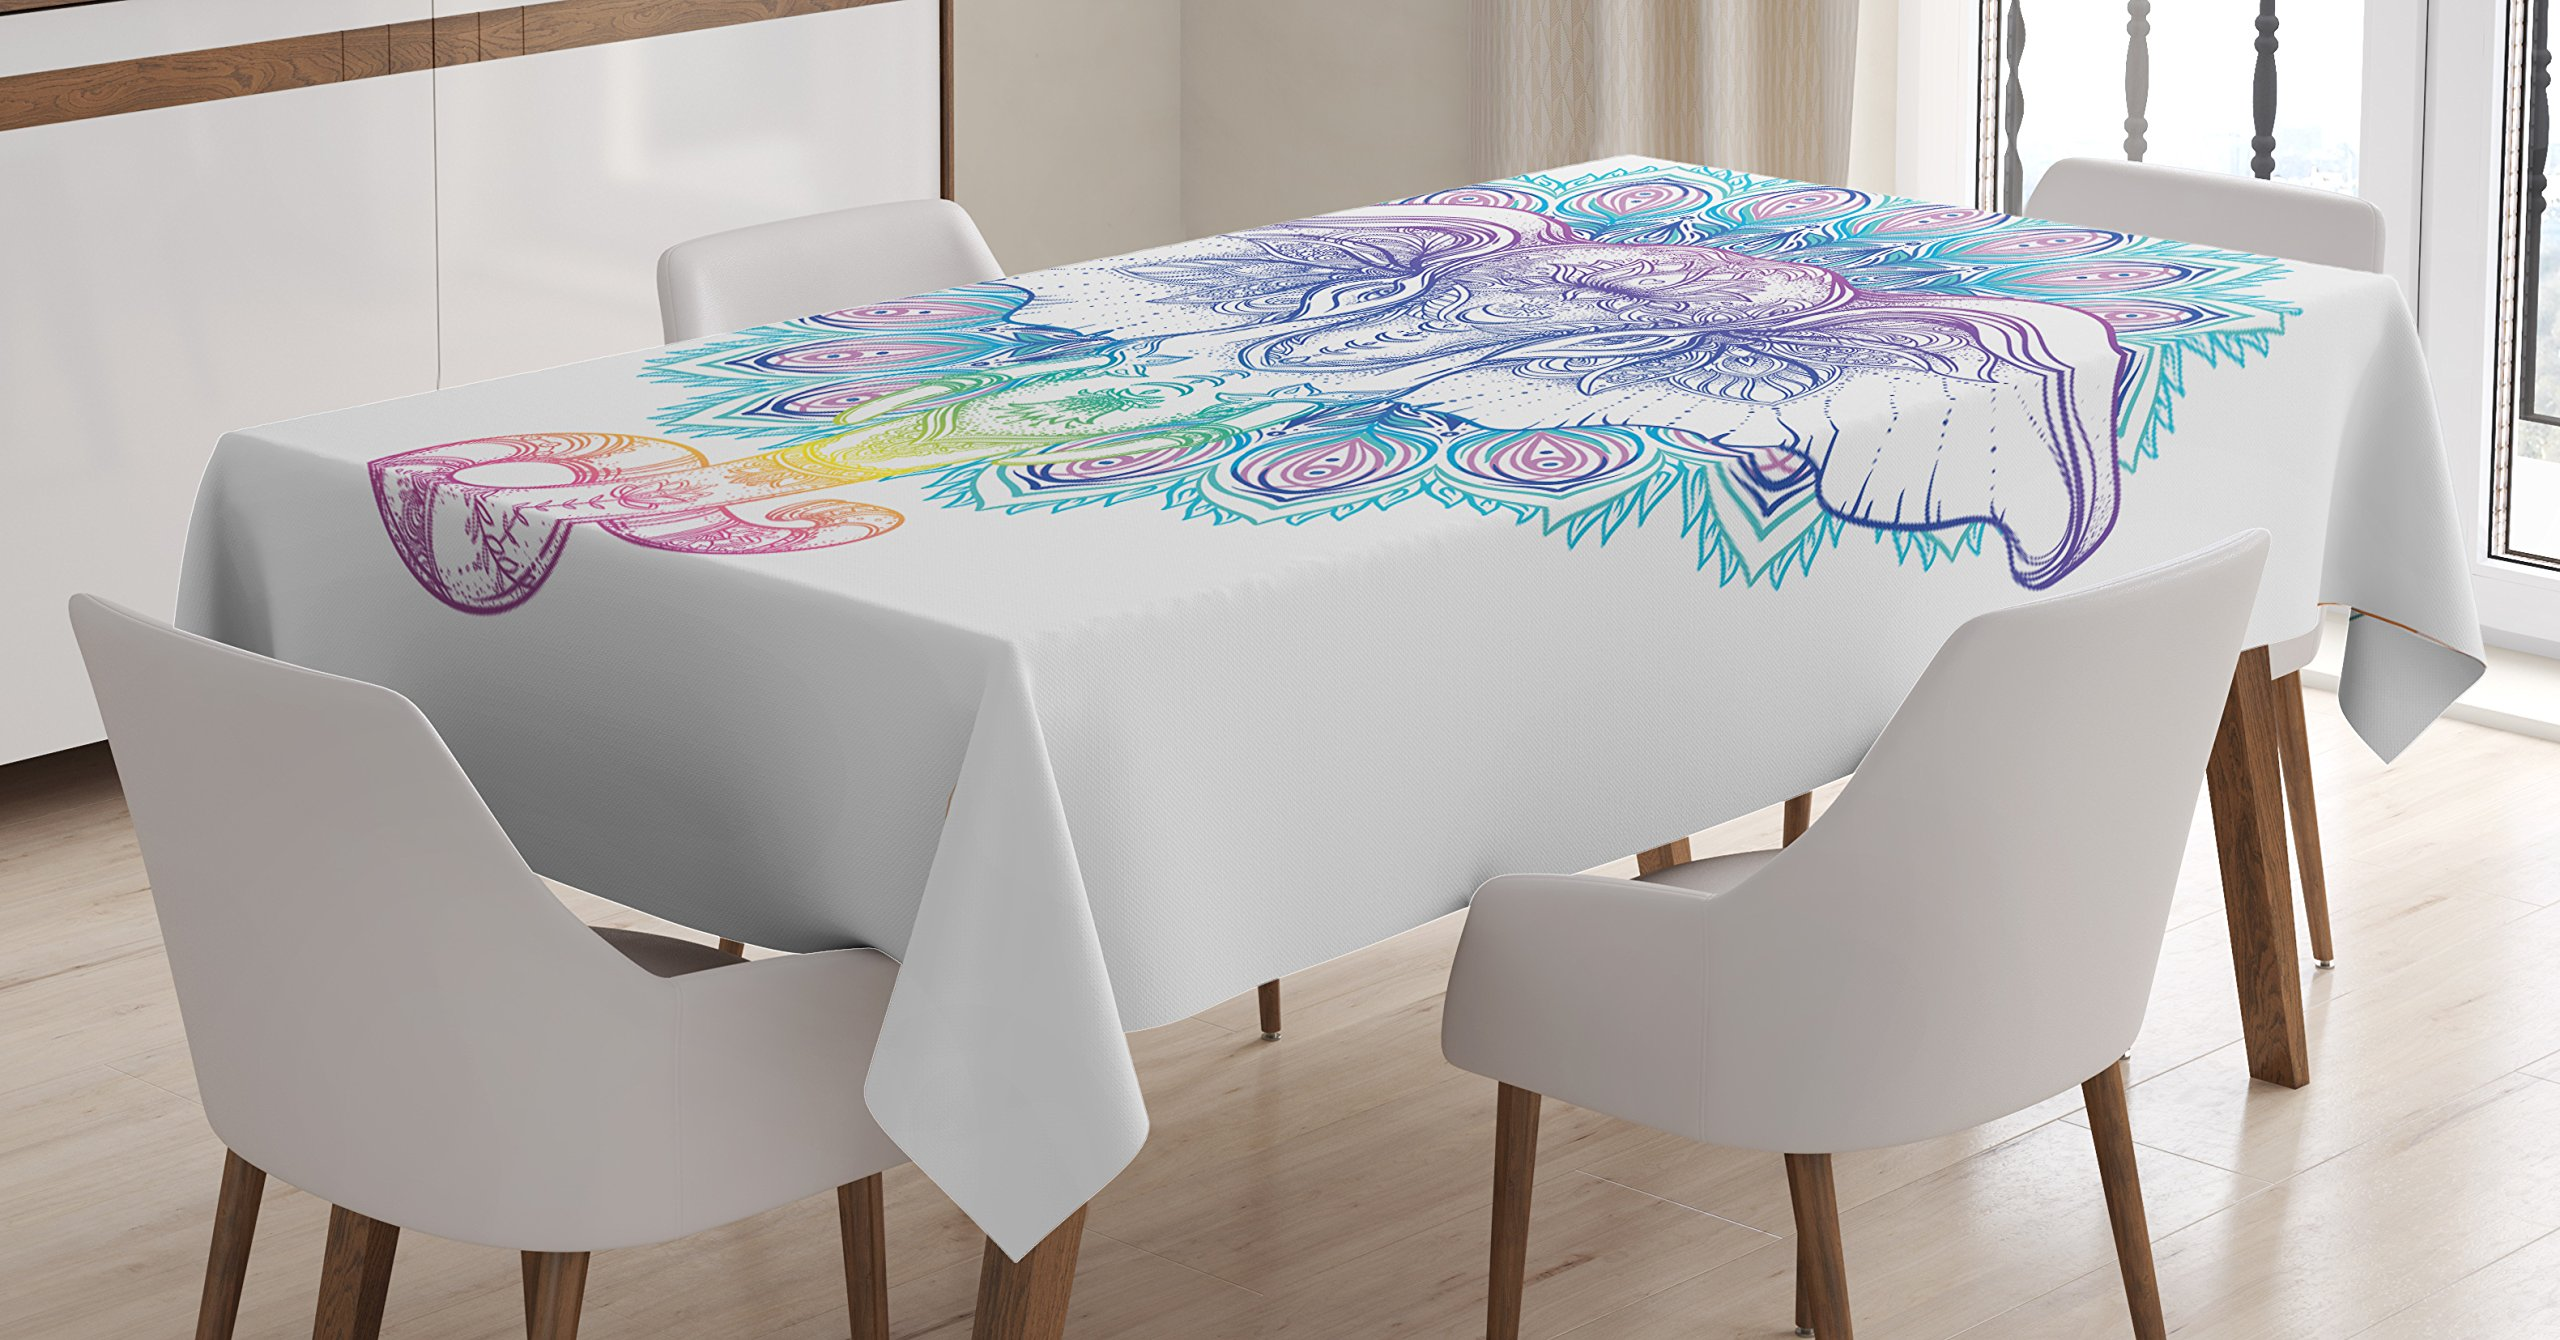 Ambesonne Elephant Mandala Tablecloth, Hand Drawn Rainbow Summer Colored Asian Guardian of Temple Animal Print, Dining Room Kitchen Rectangular Table Cover, 52 W X 70 L inches, Multicolor